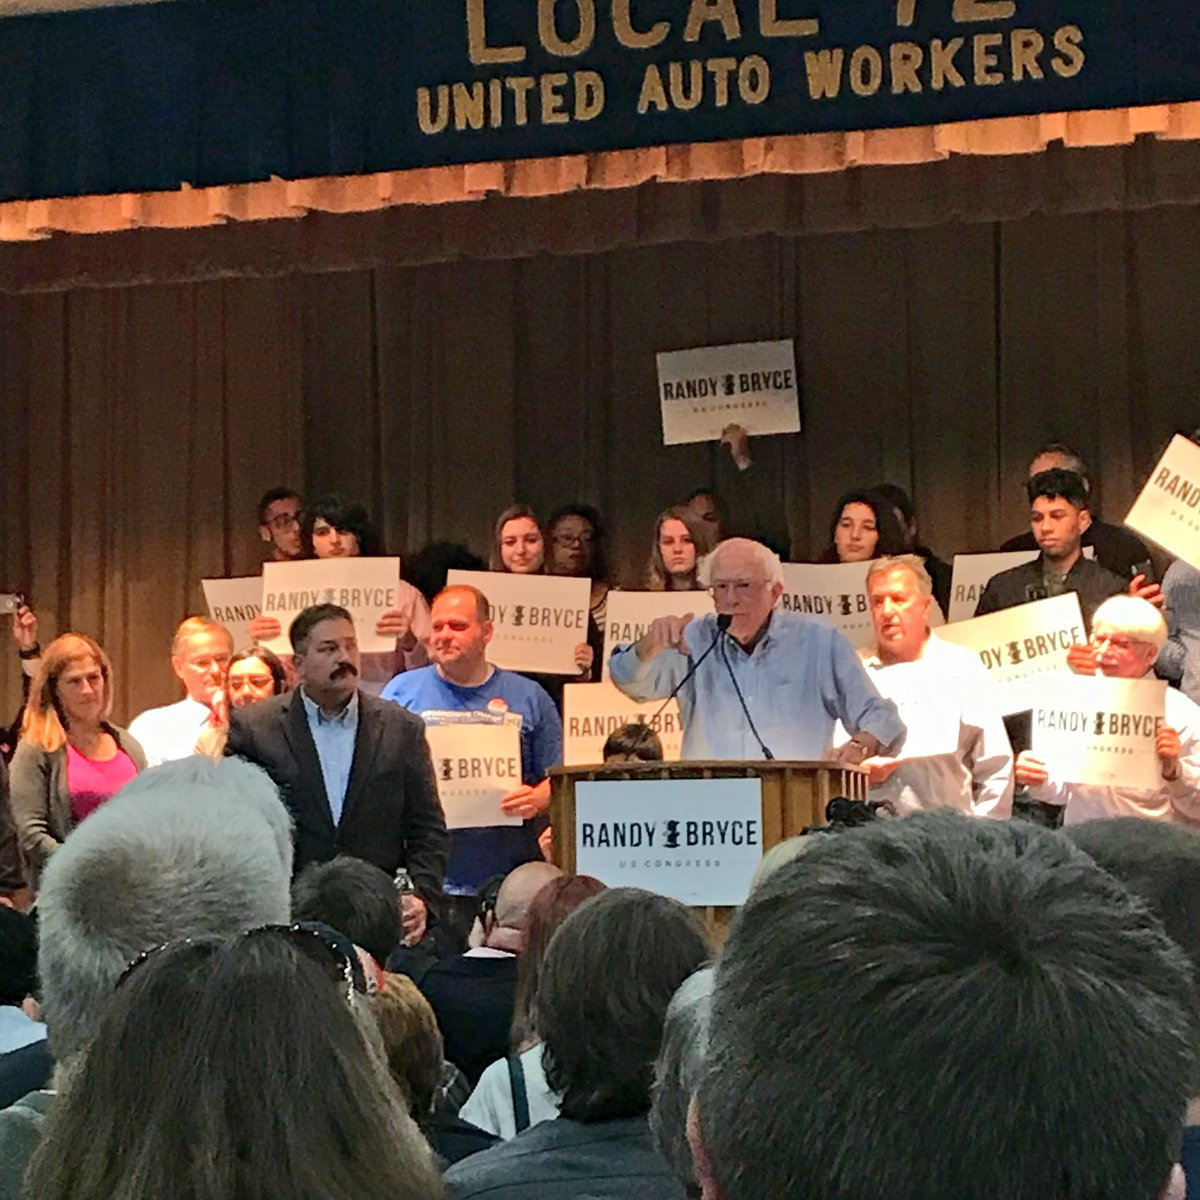 .@SenSanders wants YOU to go or and vote for @IronStache! #WI01 #Ironstache https://t.co/96VTY6OiOW